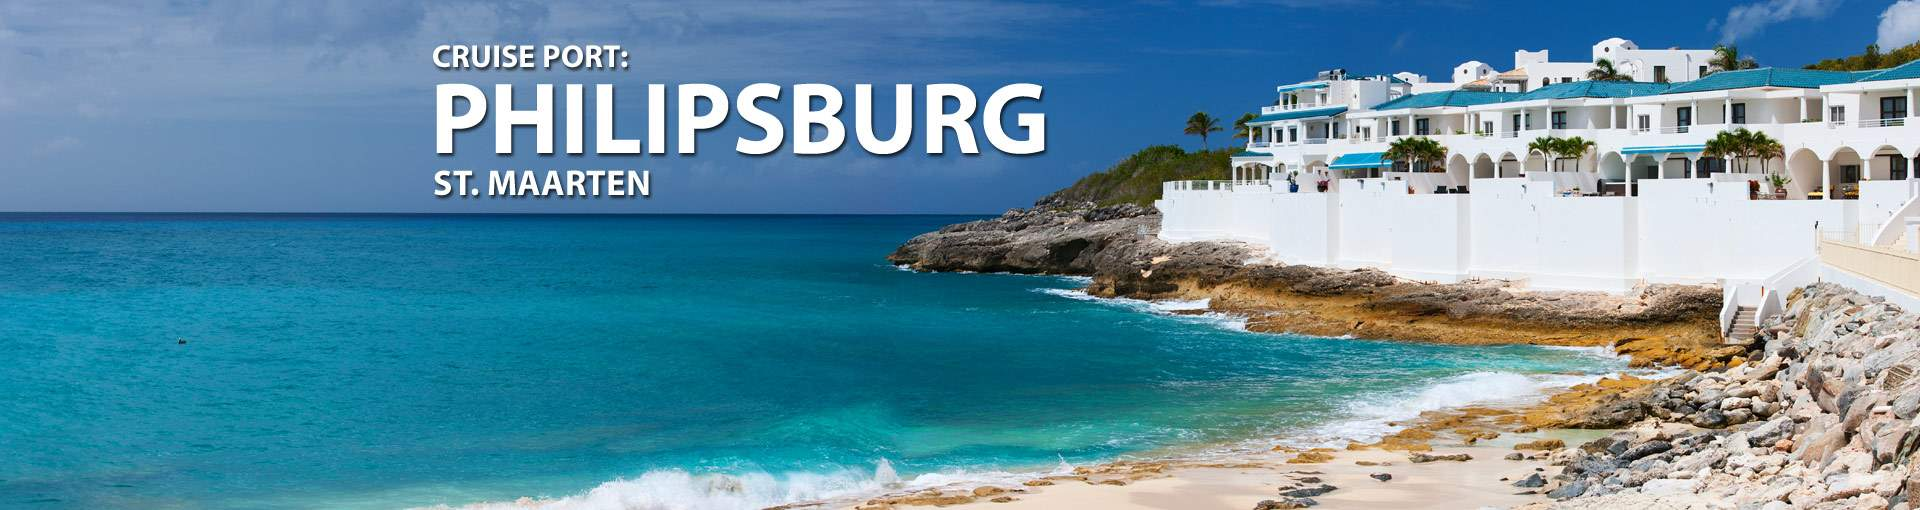 Cruises from Philipsburg, St. Maarten